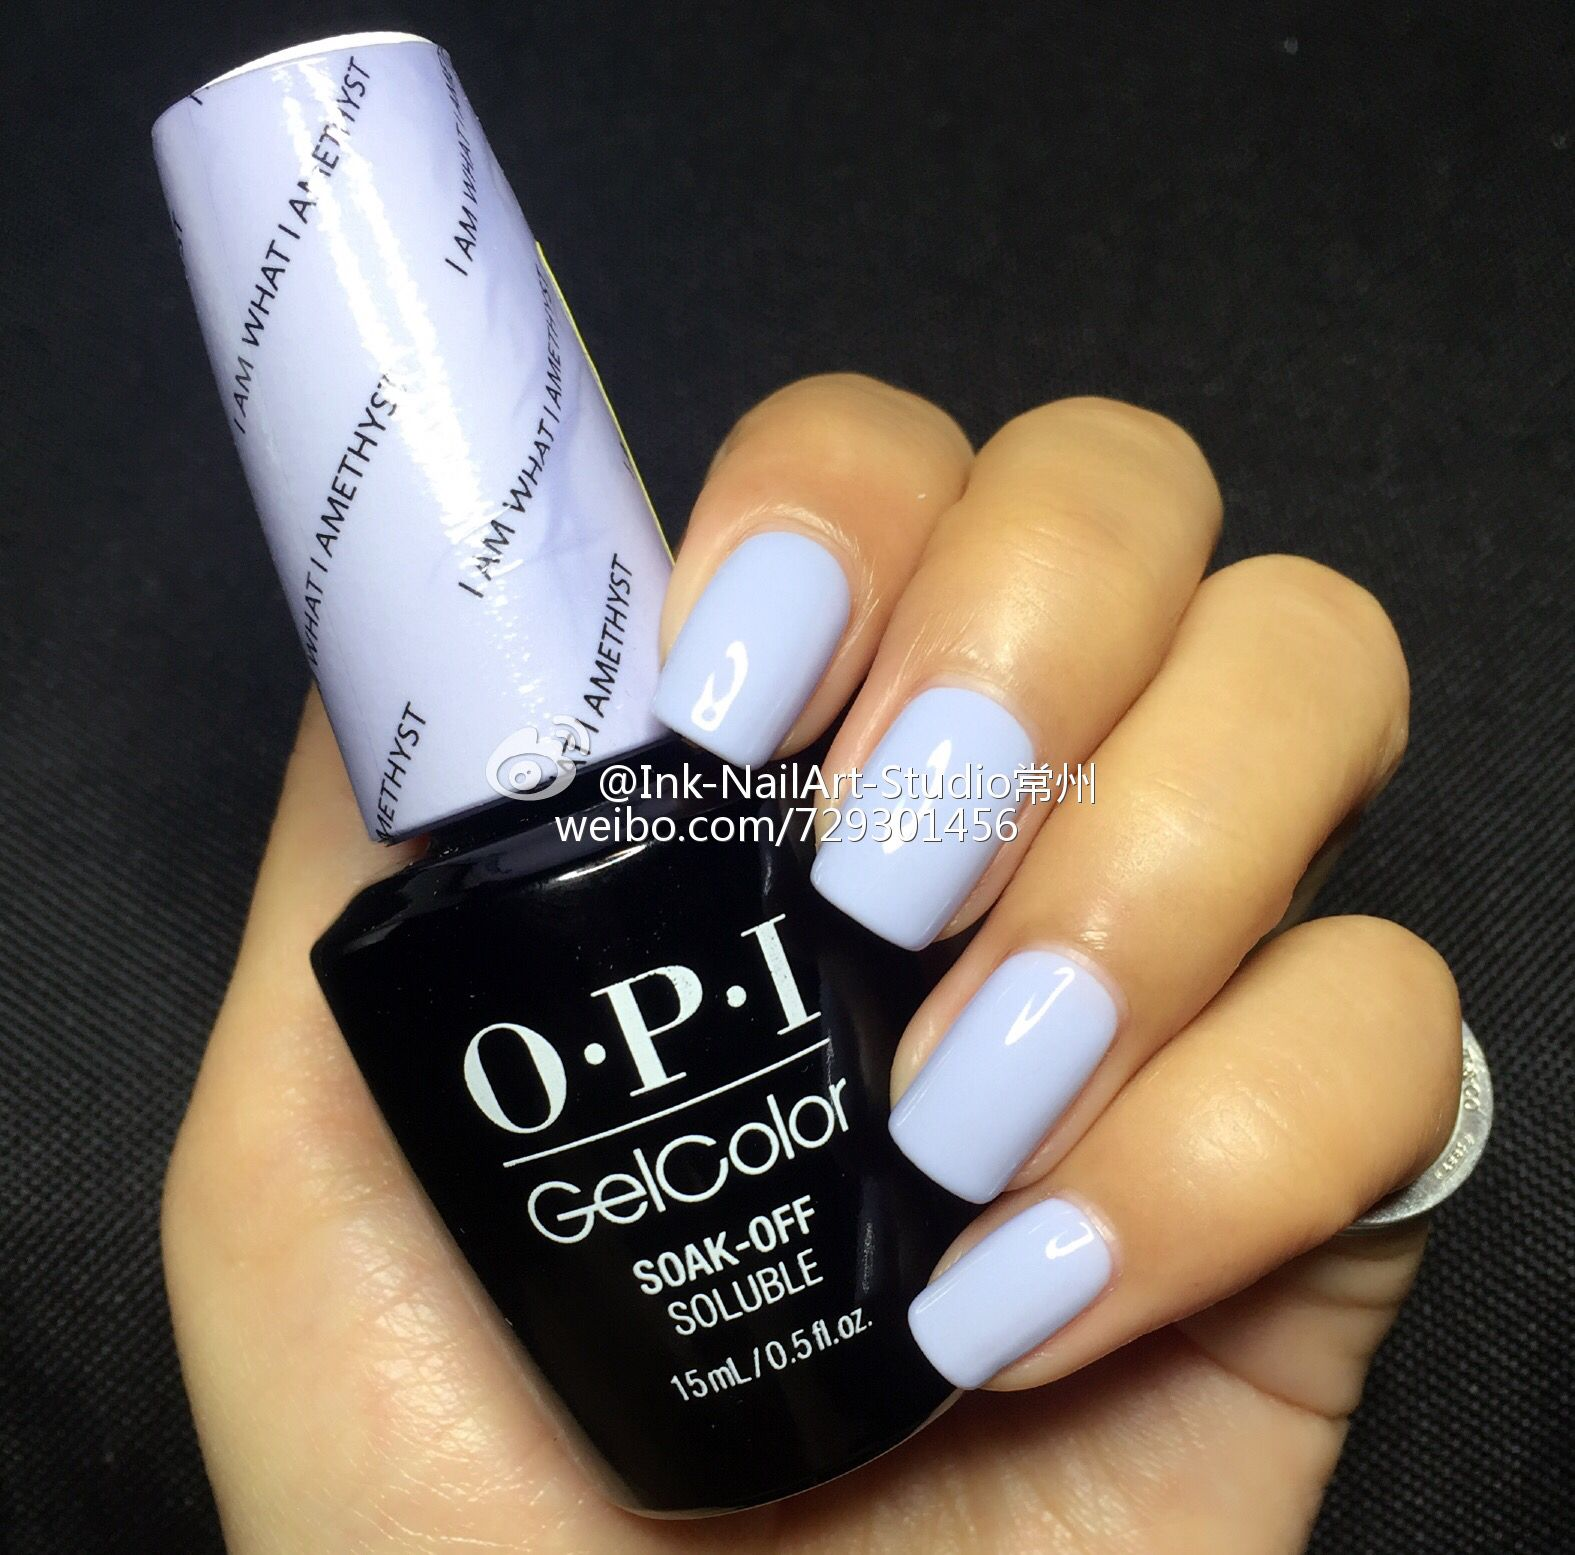 opi 2016 soft shades-pastels Gelcolor"